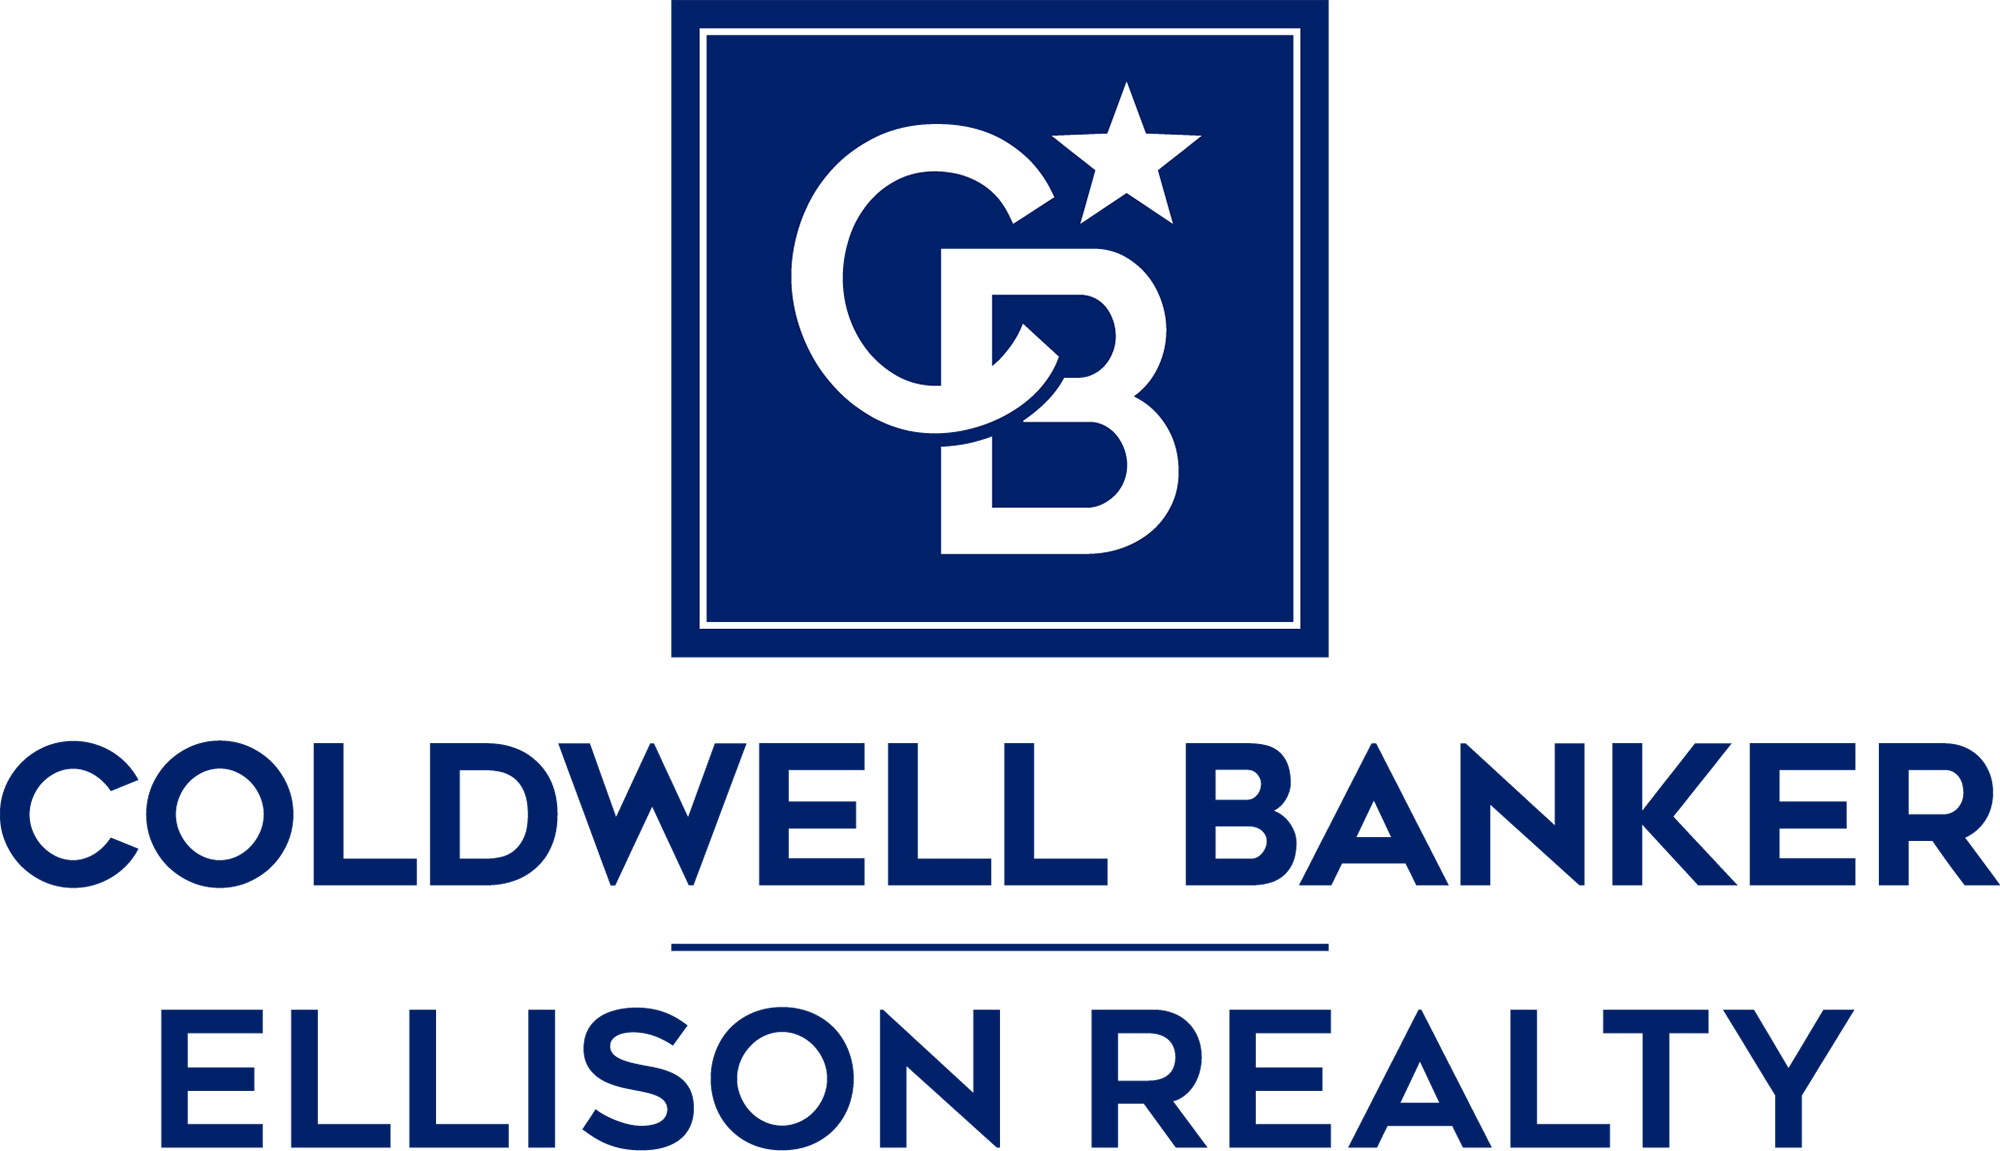 Chris Swor - Coldwell Banker Ellison Realty Logo